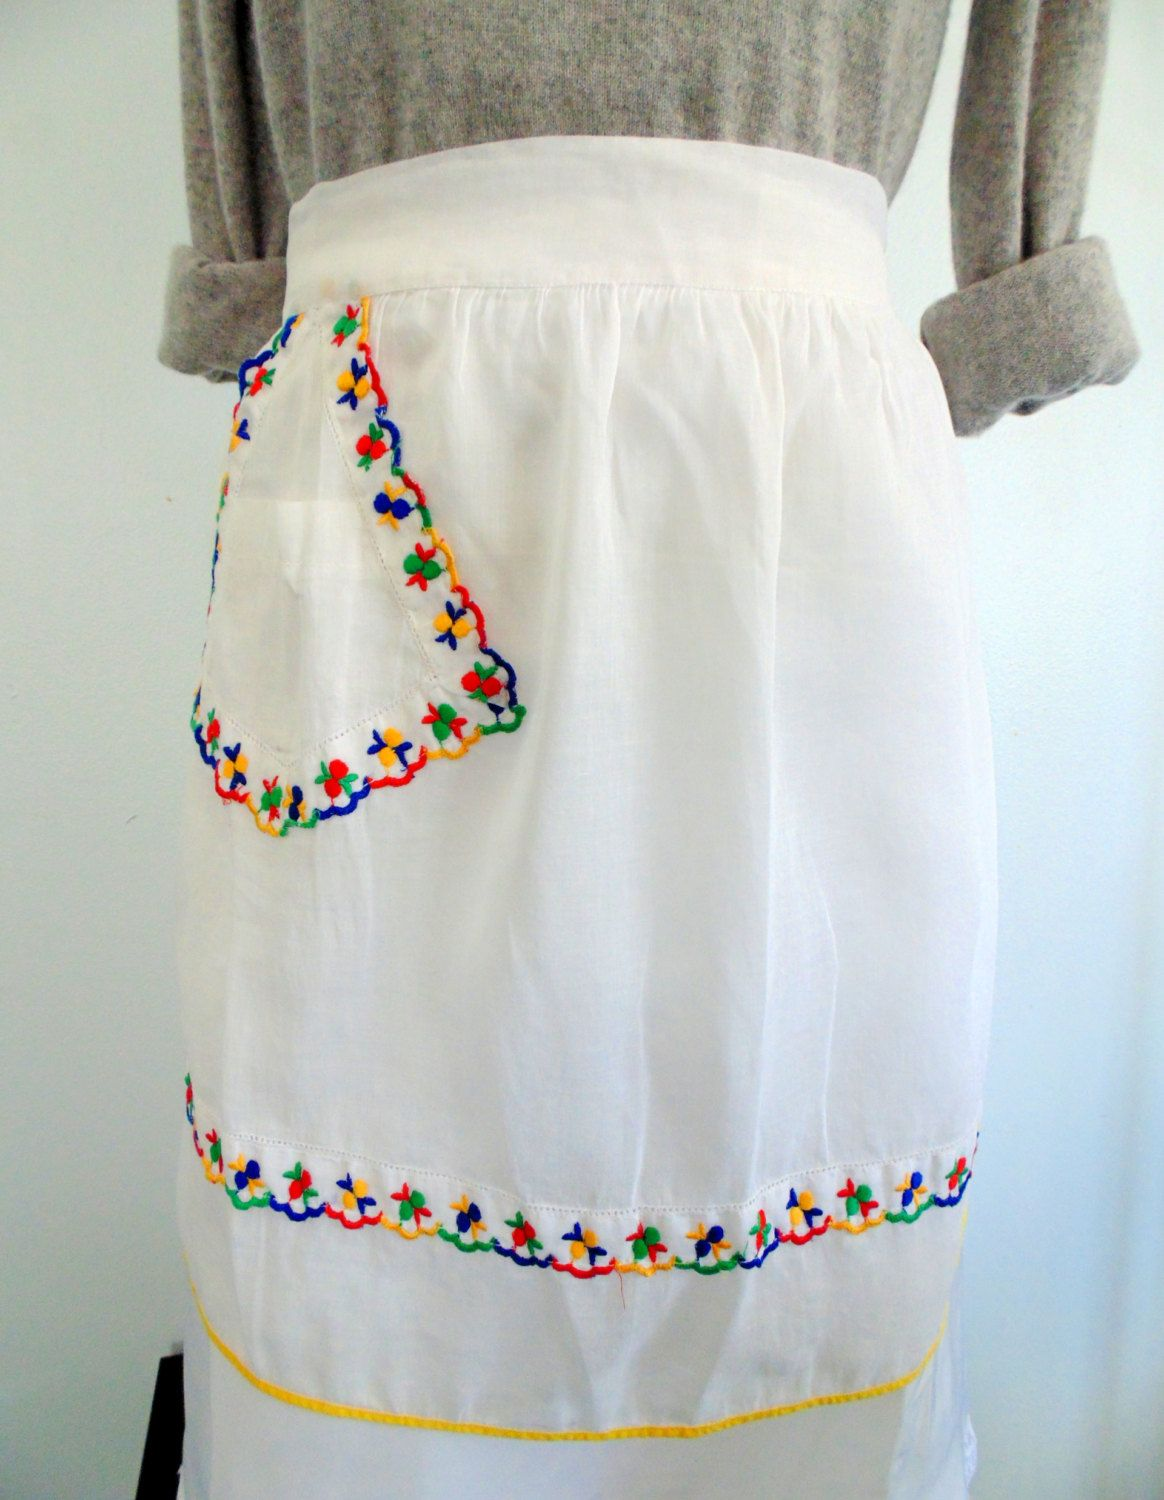 White half apron vintage - Sheer Half Apron White With Colorful Embroidery Accents And Pocket Vintage 1950s